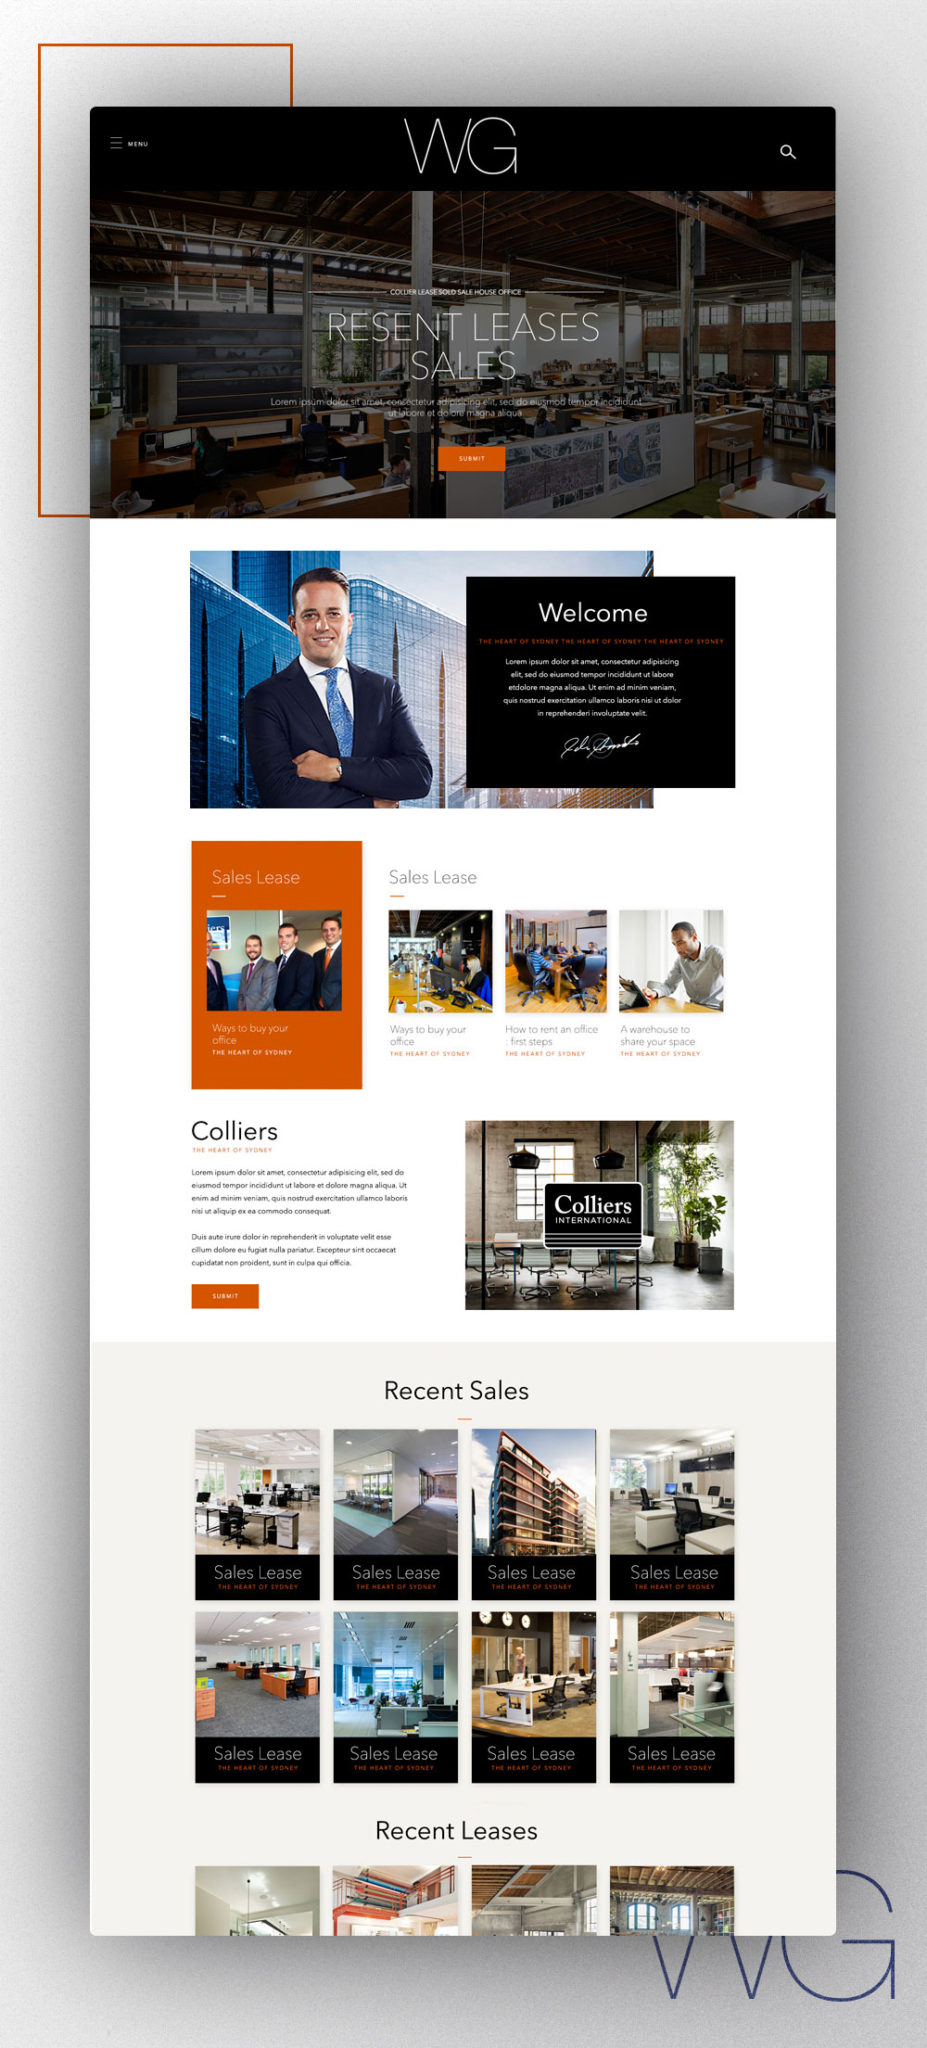 DesignIdentity_WillianGathercole_webdesign__2